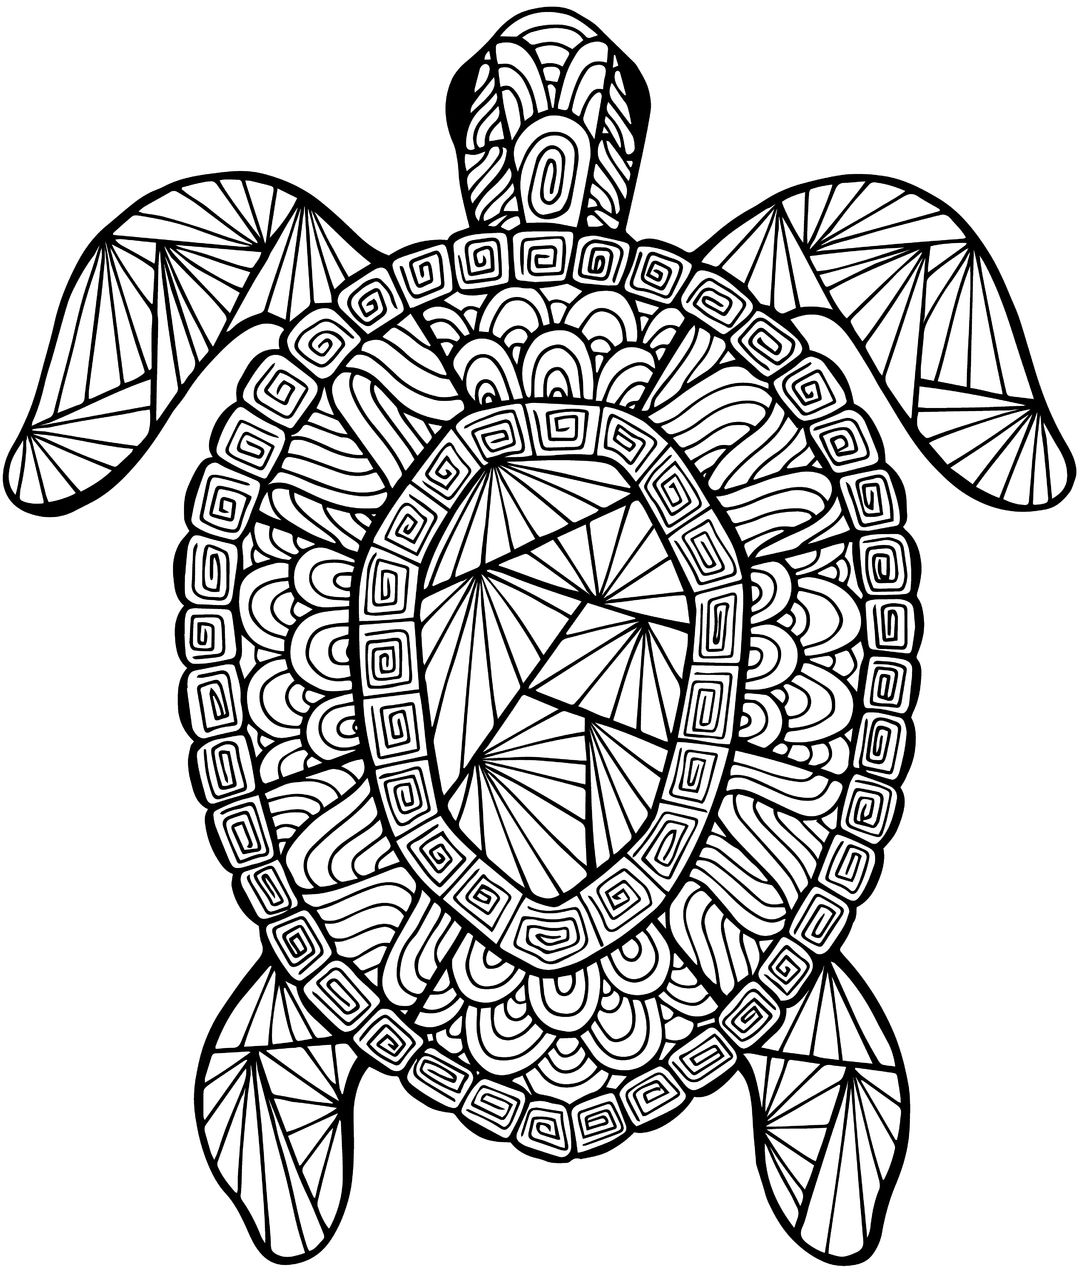 Detailed Sea Turtle Advanced Coloring Page A to Z